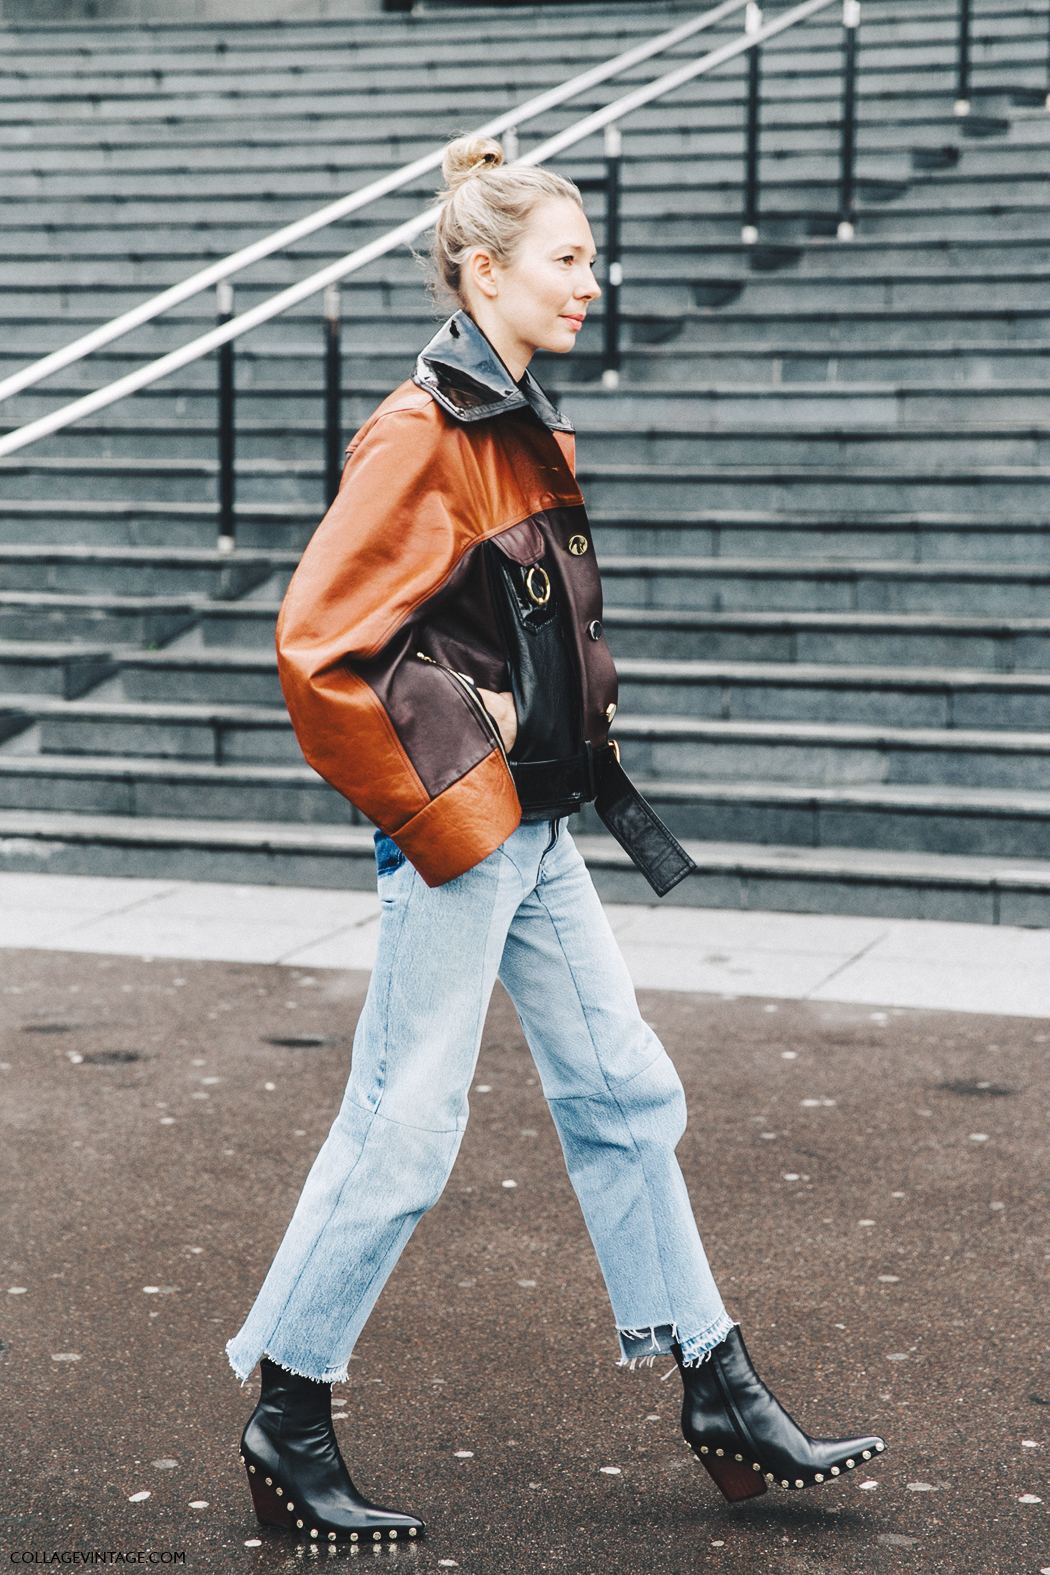 PFW-Paris_Fashion_Week_Fall_2016-Street_Style-Collage_Vintage-Vetements_Jeans-Celine_Boots-Leather_Jacket-8